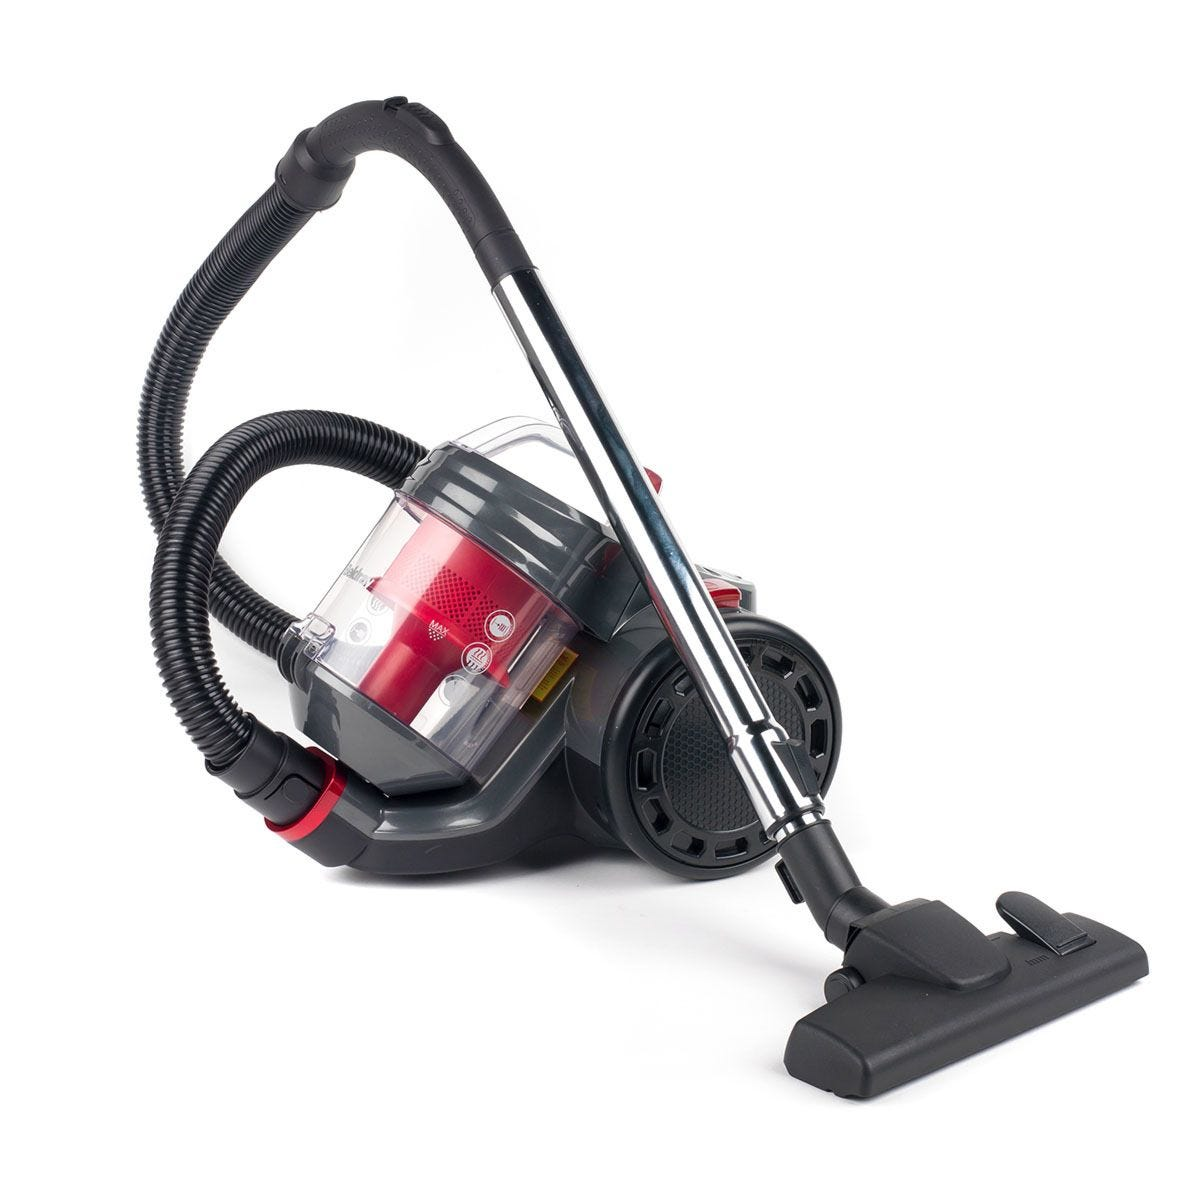 Beldray BEL0700 Compact Vac Lite 2L Cyclonic Bagless Cylinder 700W Vacuum Cleaner – Red / Graphite